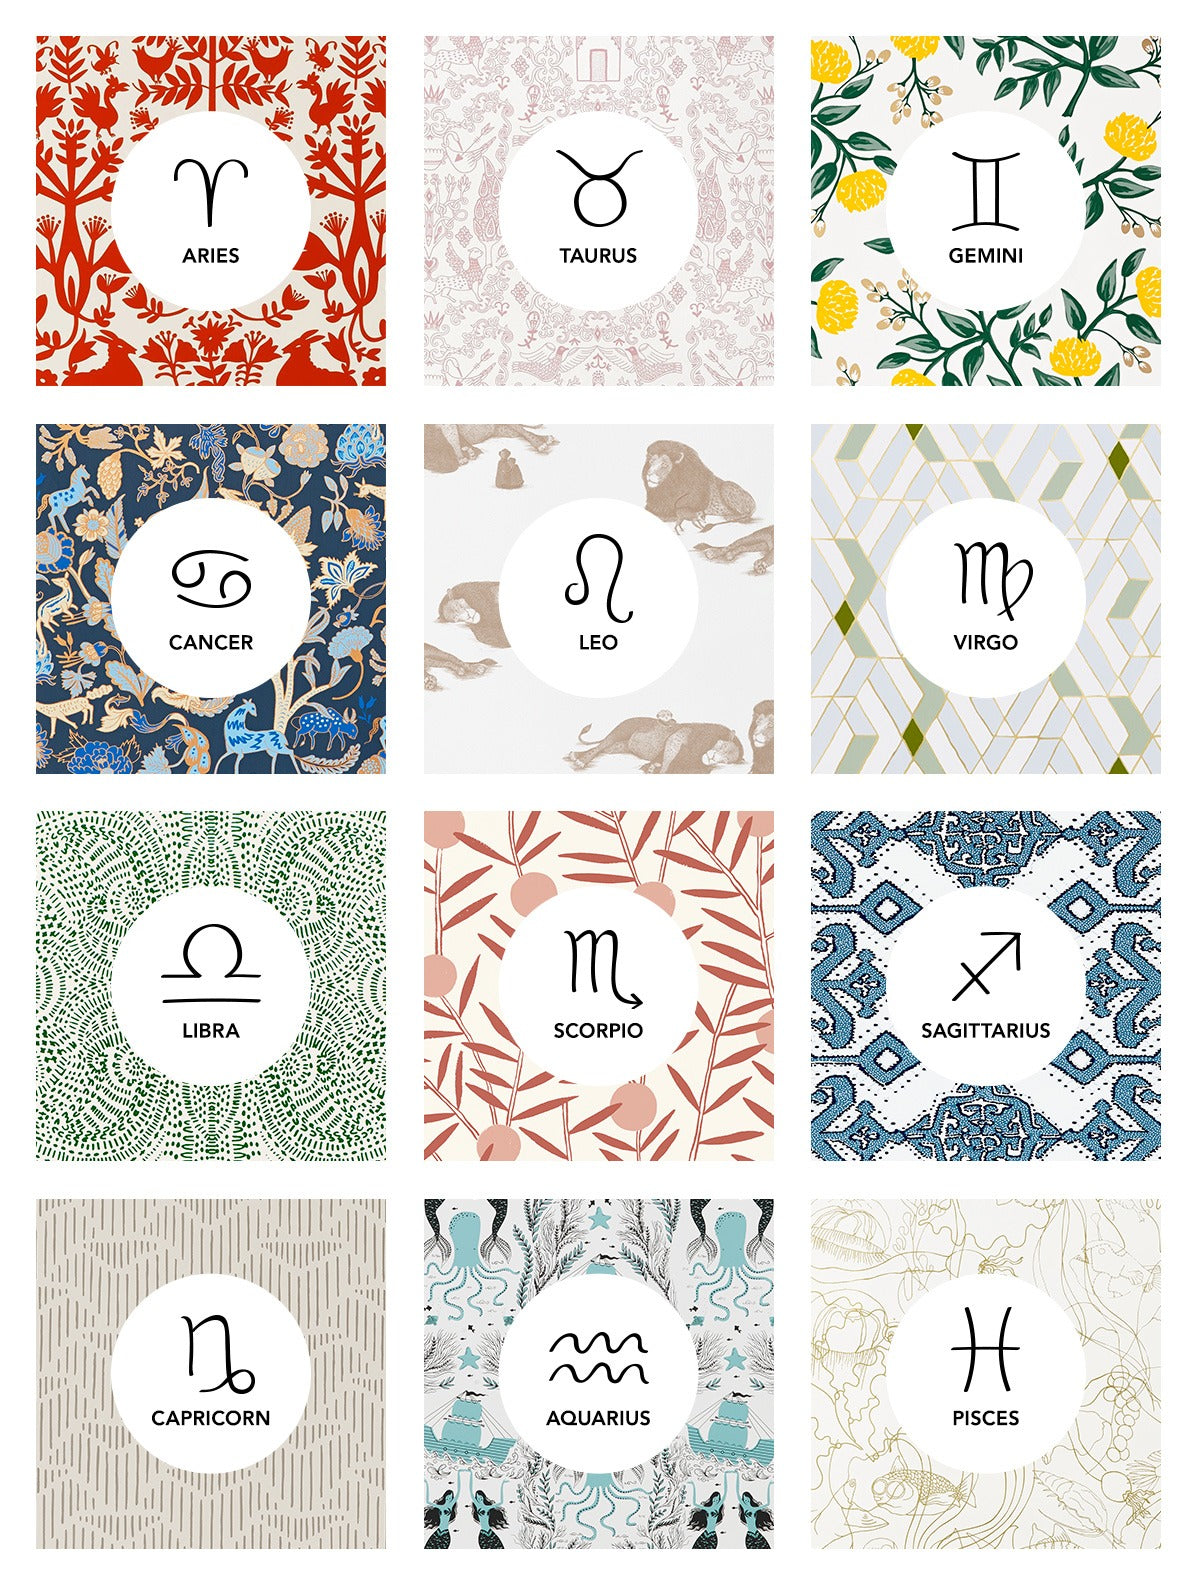 It's Wallpapered in the Stars | Pattern and Zodiac Sign Pairings | Hygge & West